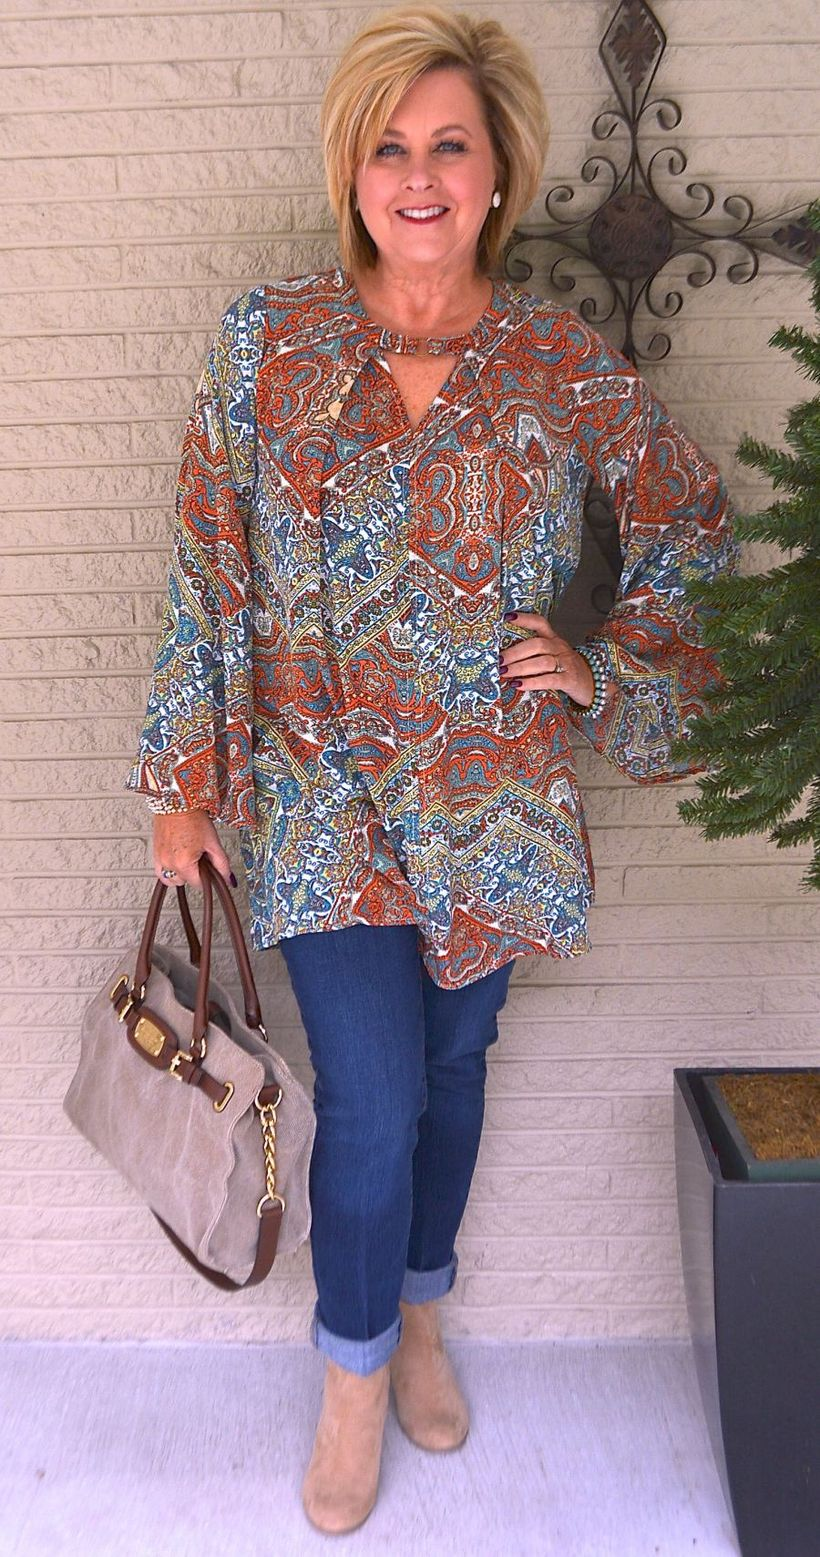 Fashionable over 50 fall outfits ideas 134